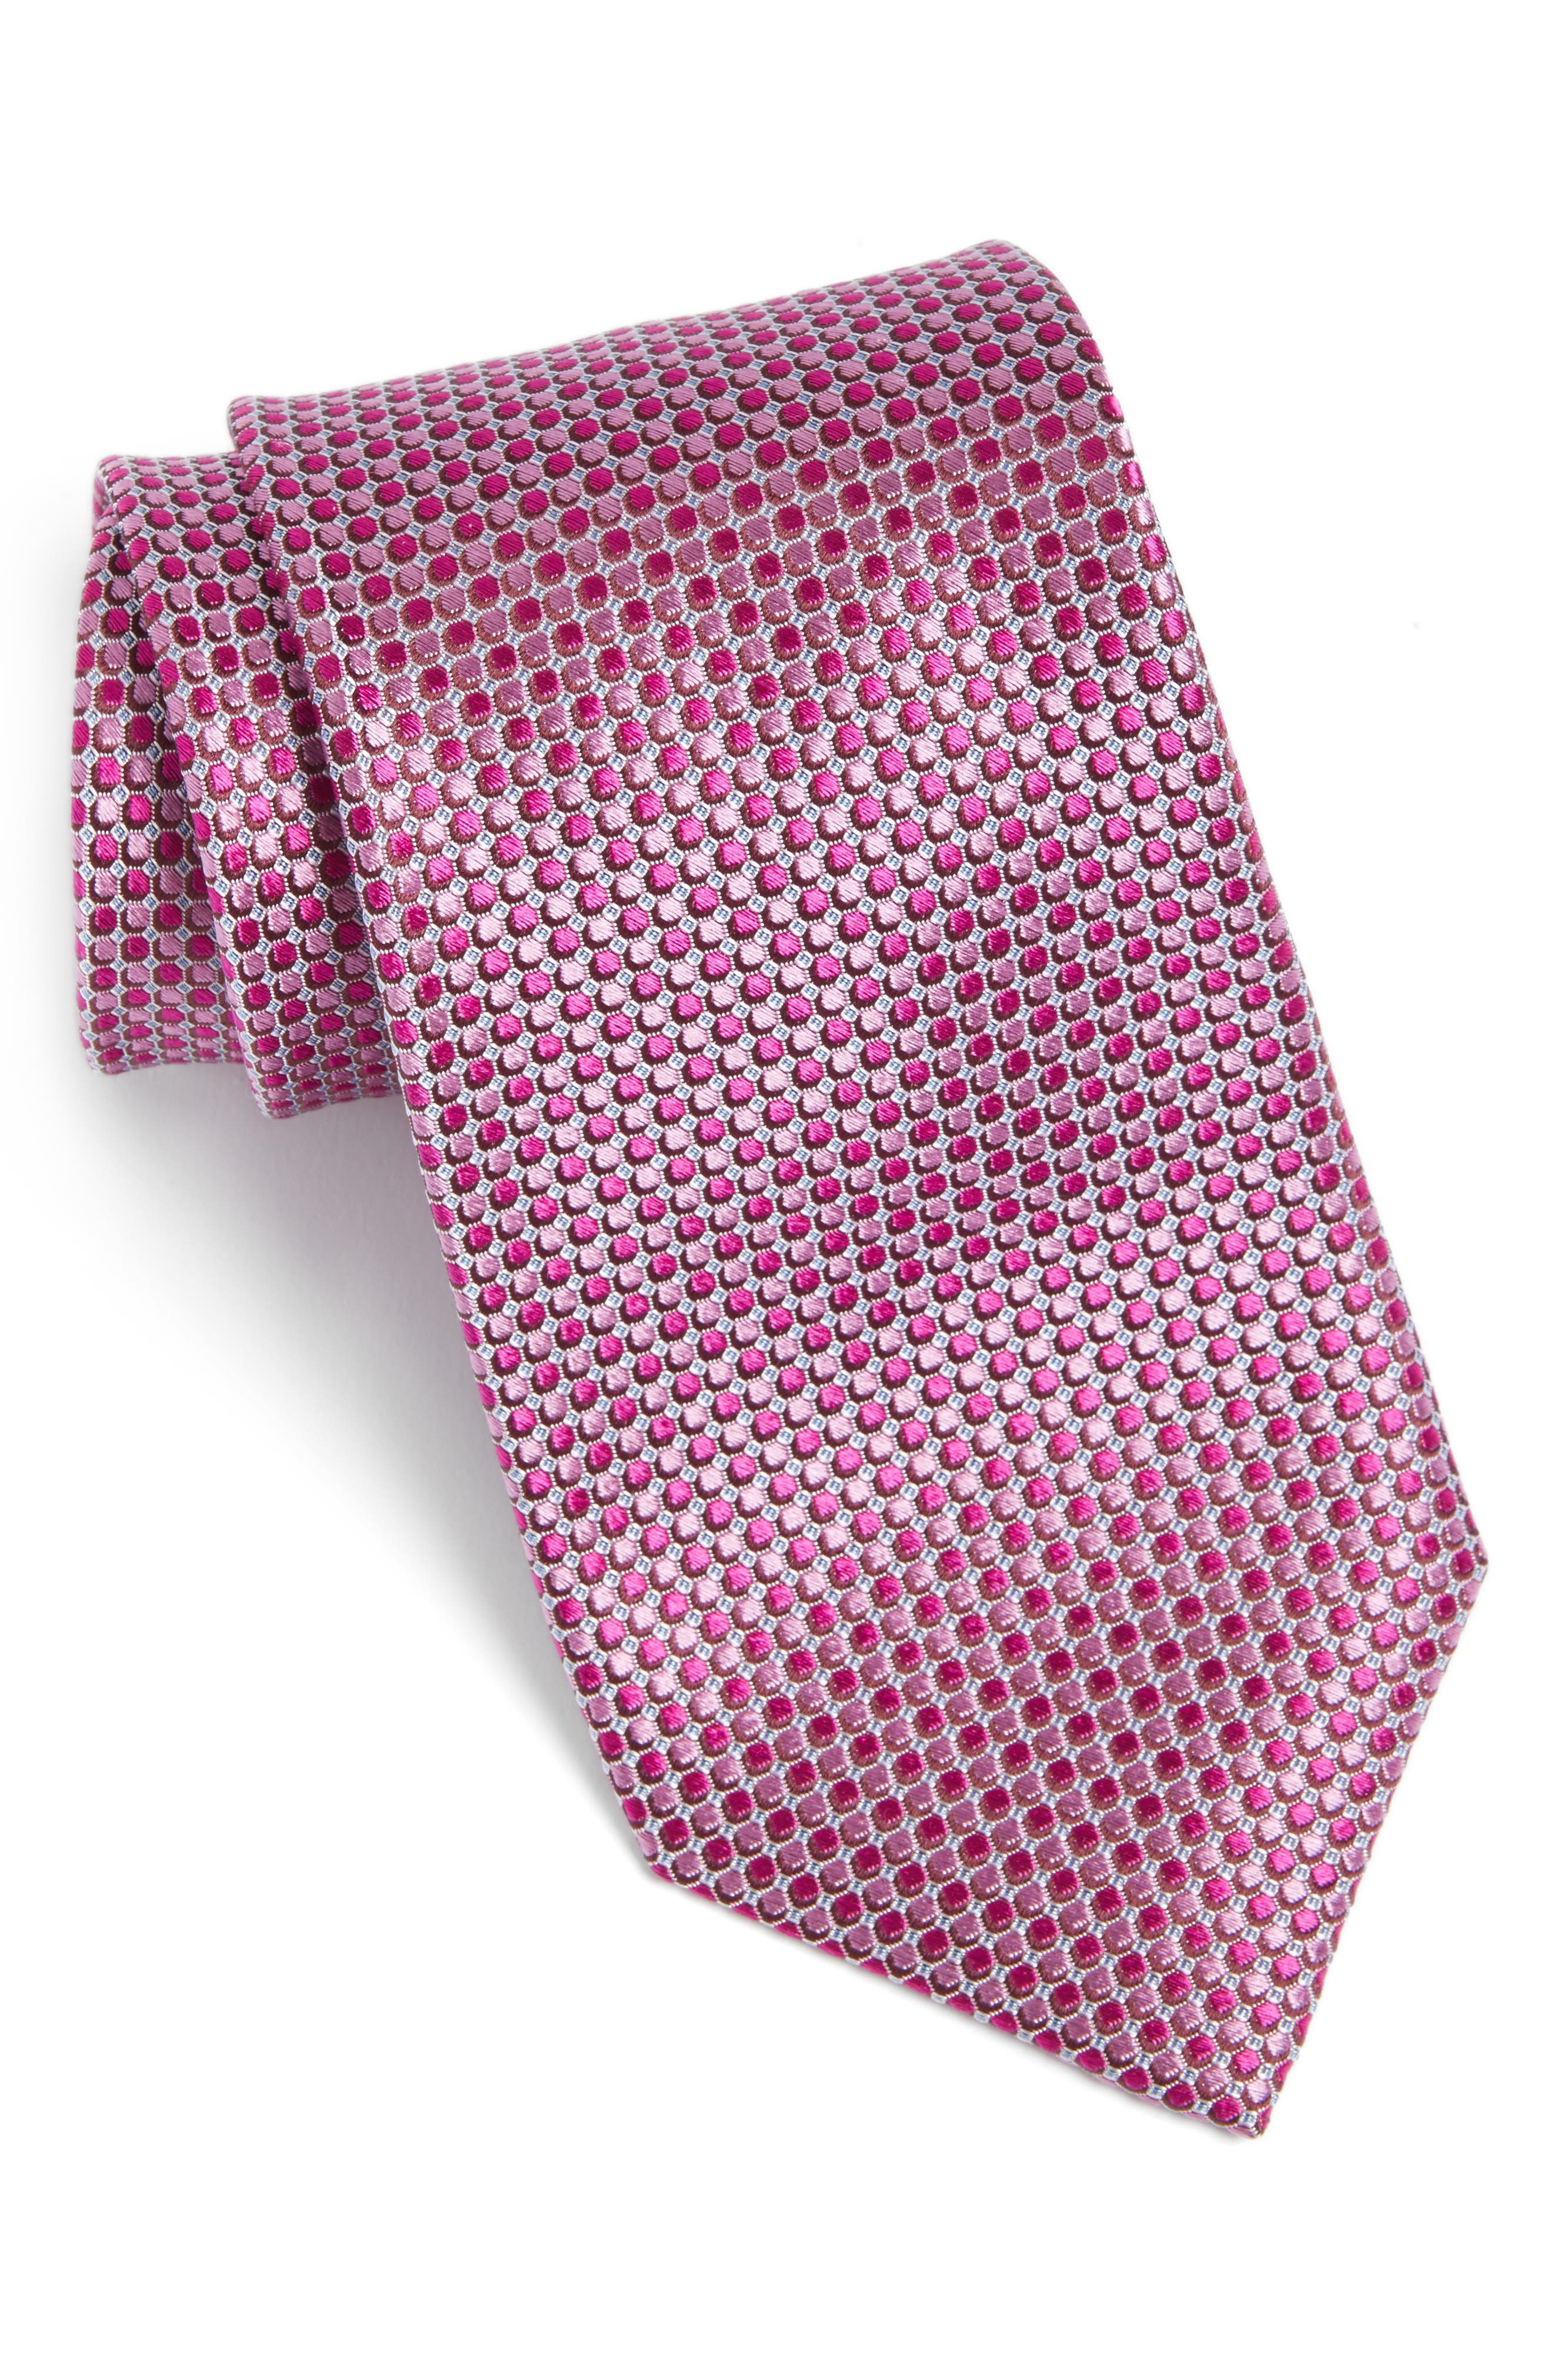 Alghero Micro Silk Tie,                         Main,                         color, Magenta